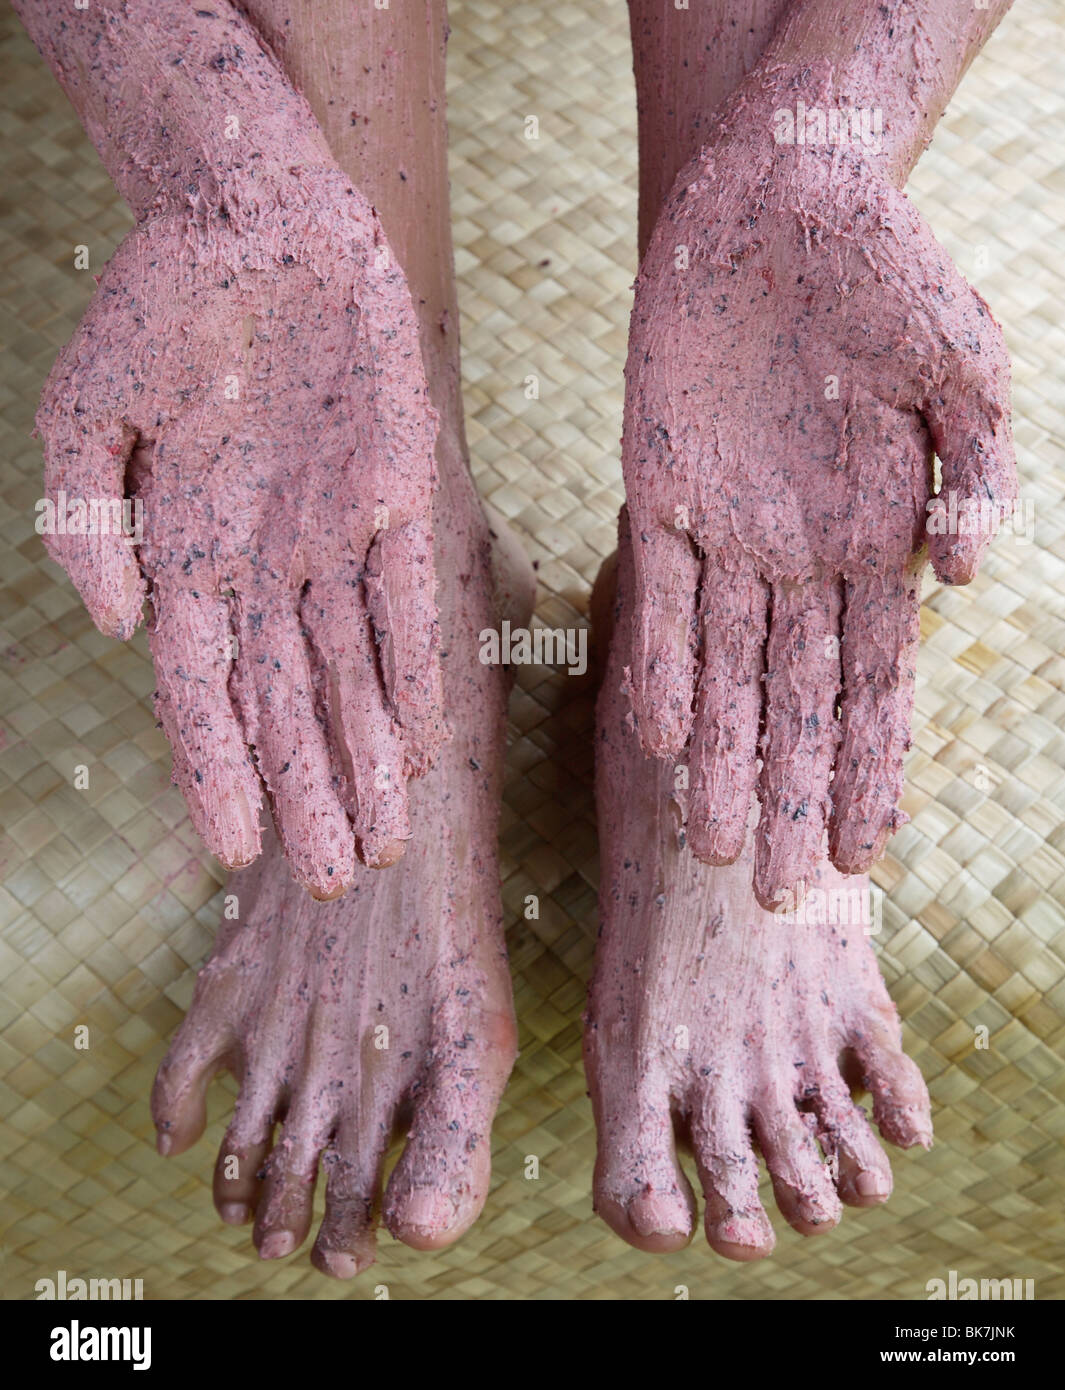 Close-up of Roselle body scrub treatment on hands and feet - Stock Image